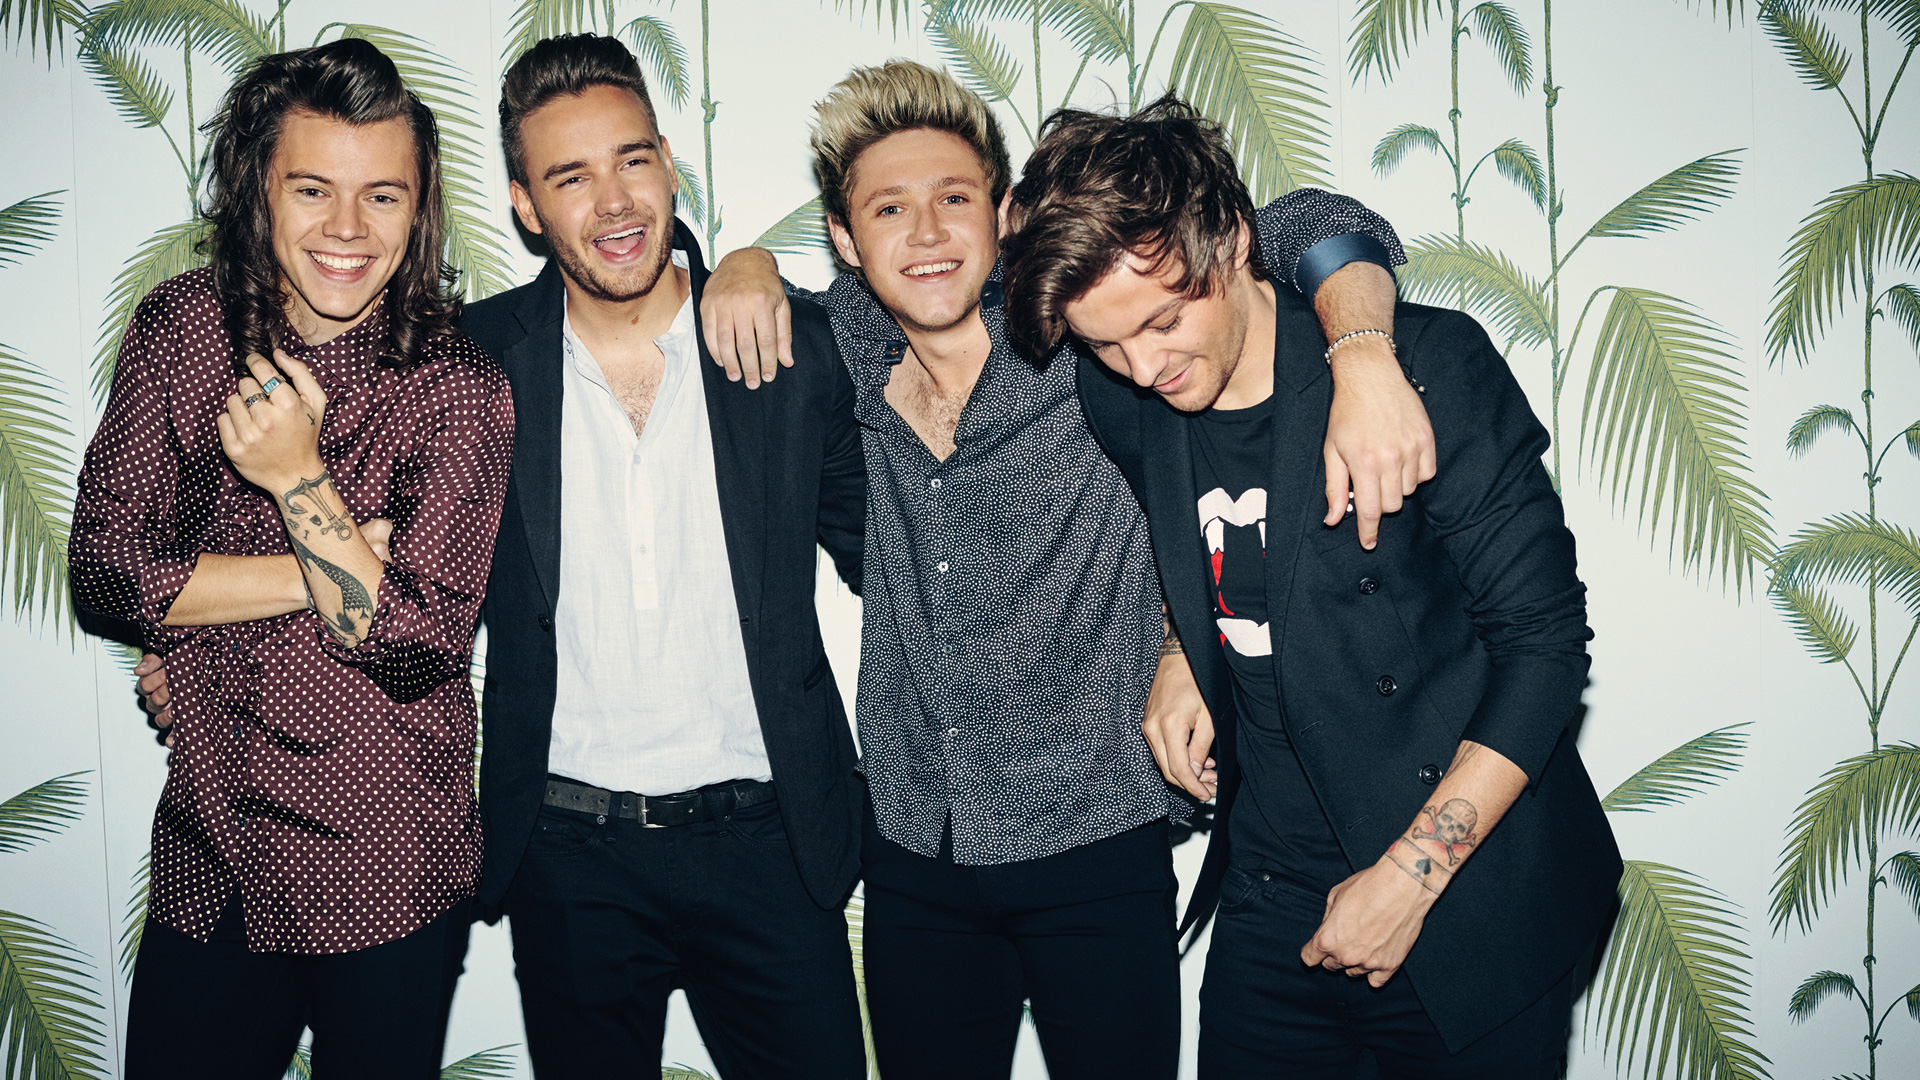 One Direction Wallpapers, Pictures, Images